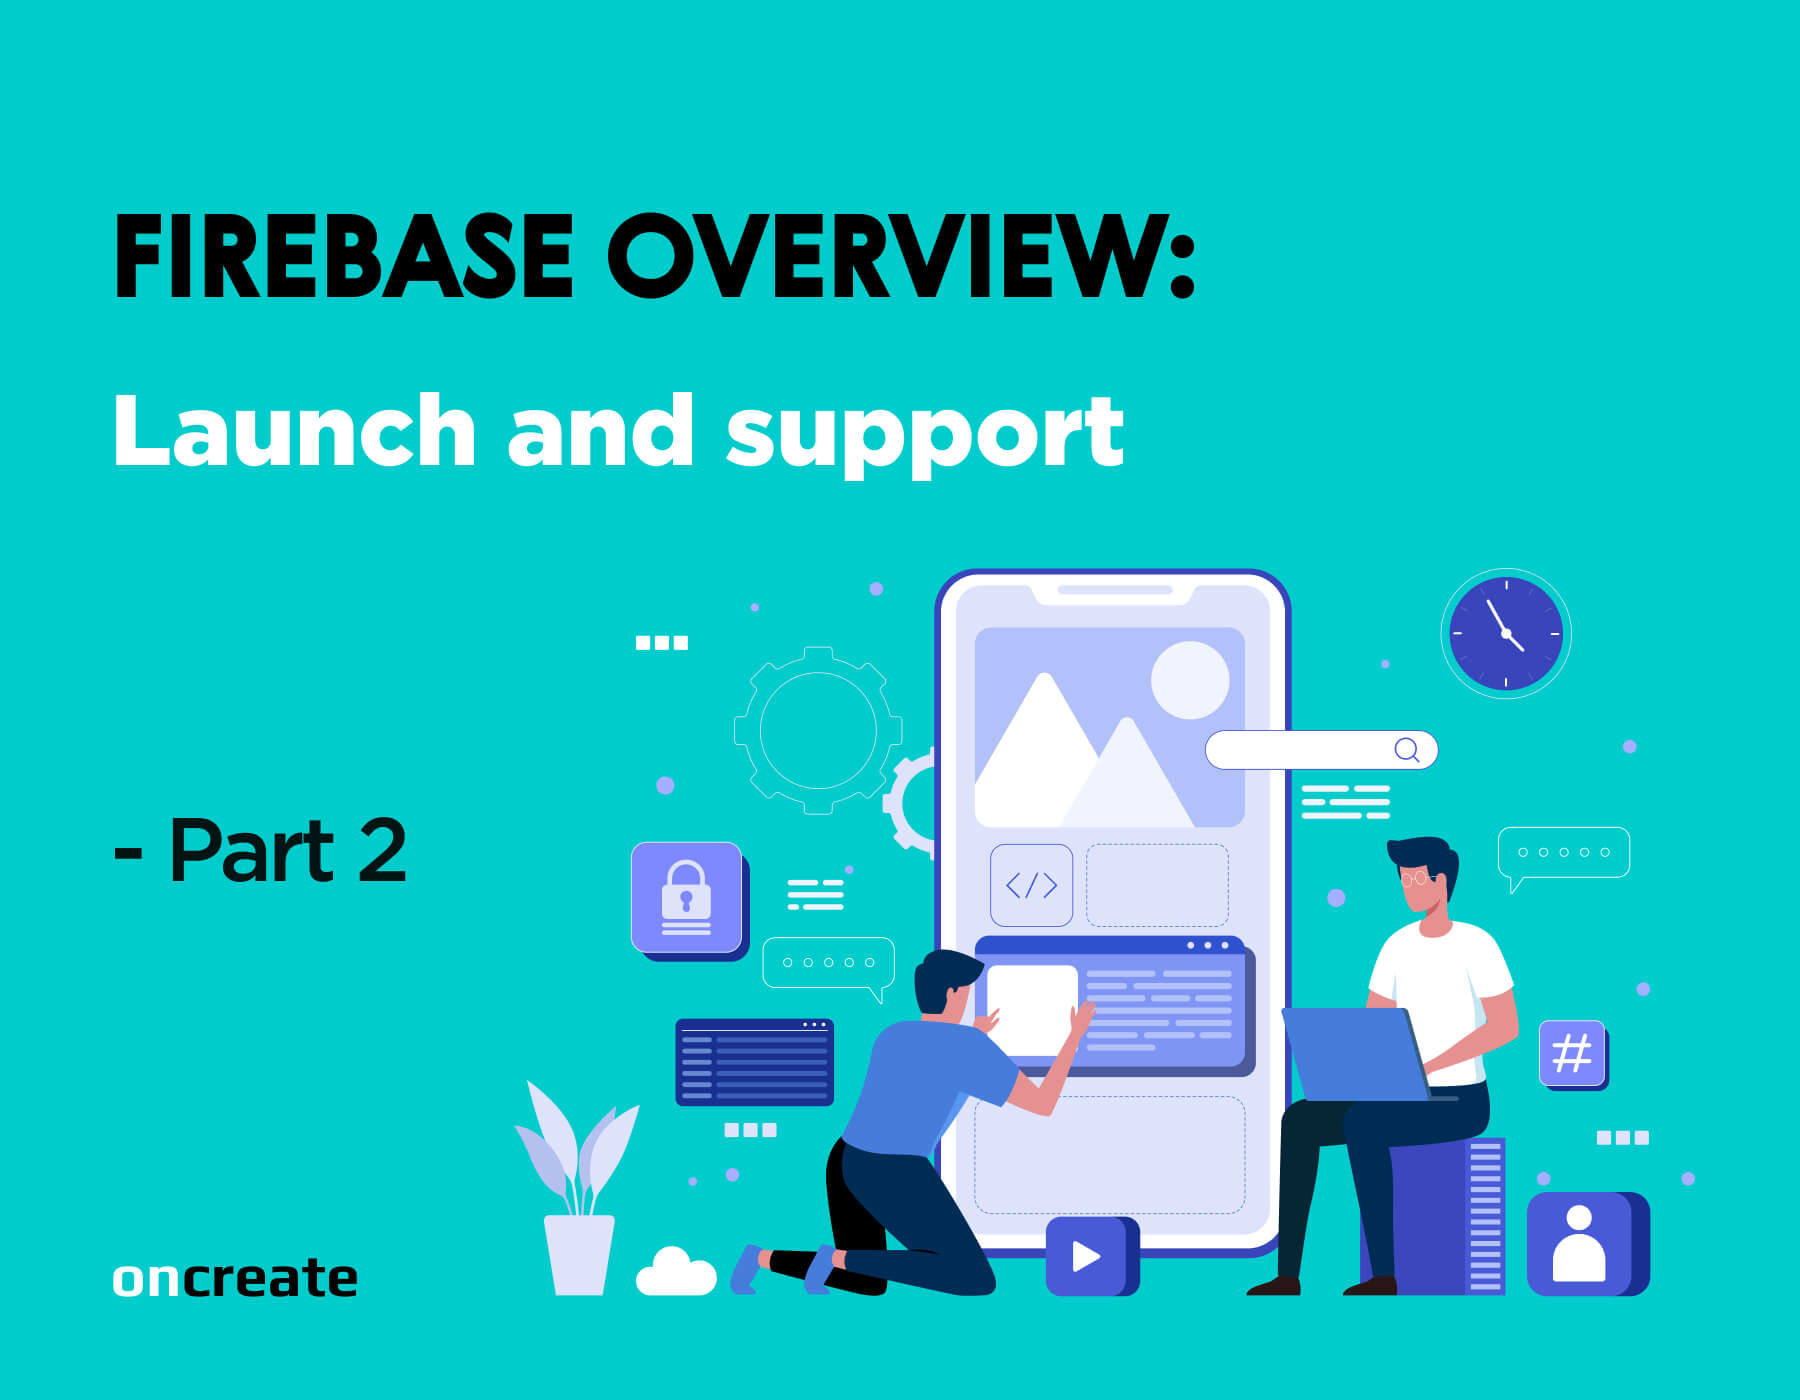 Firebase Overview: Launch and Support